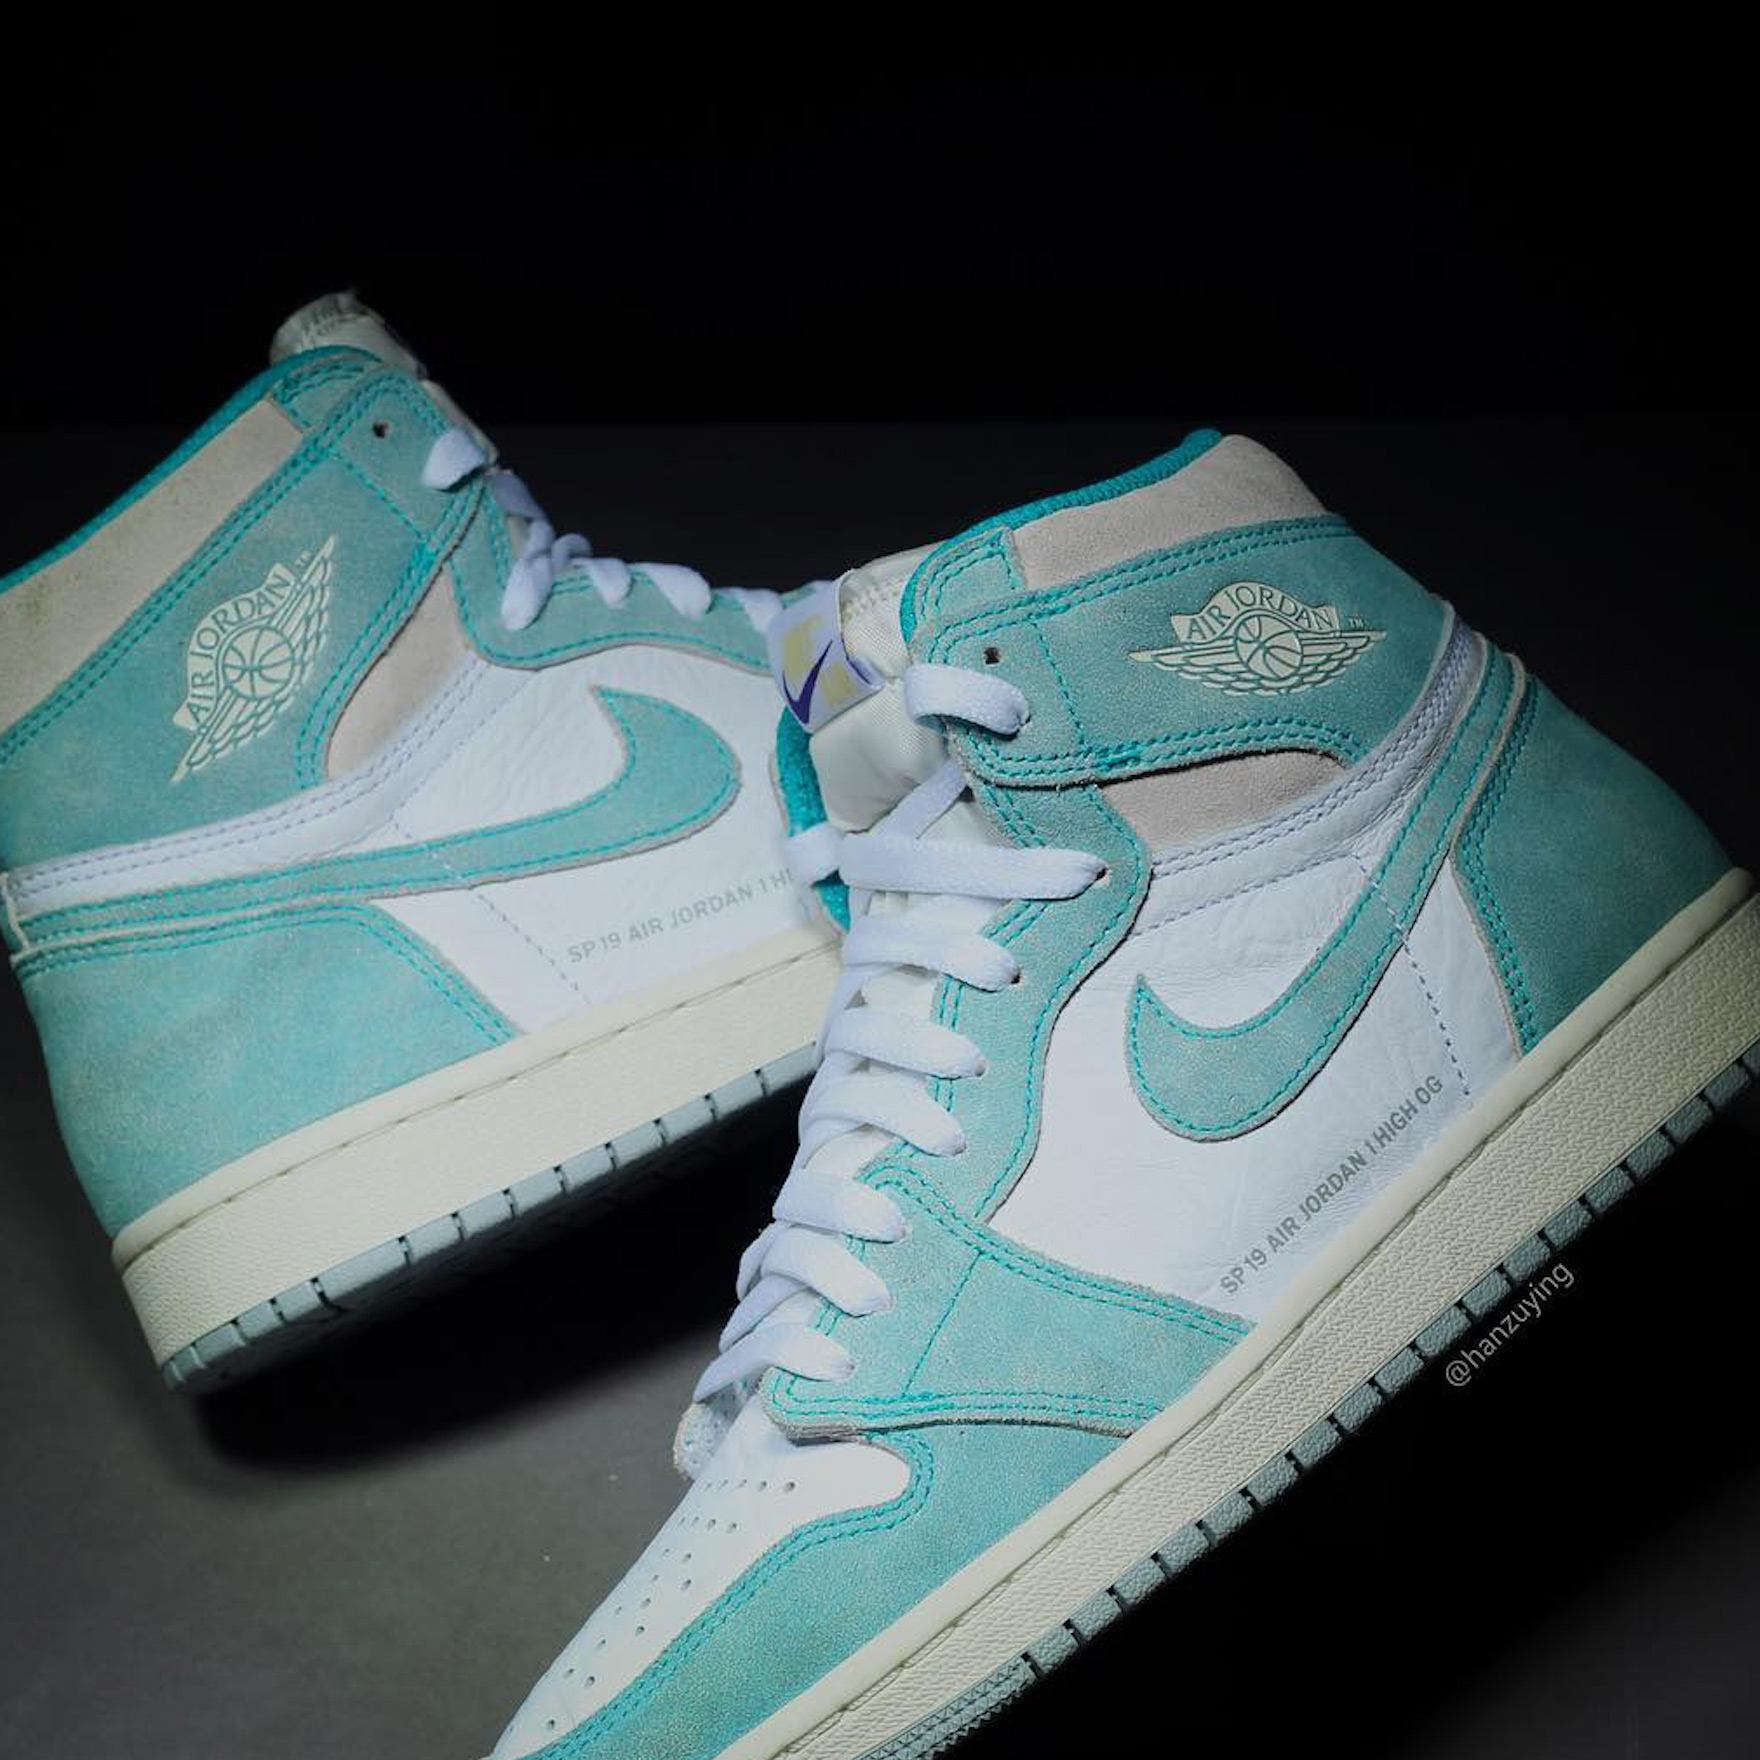 c05d8166516 Air Jordan 1 Retro High OG Release Date  February 15 2019  160. Color   Turbo Green White Light Smoke Grey Sail